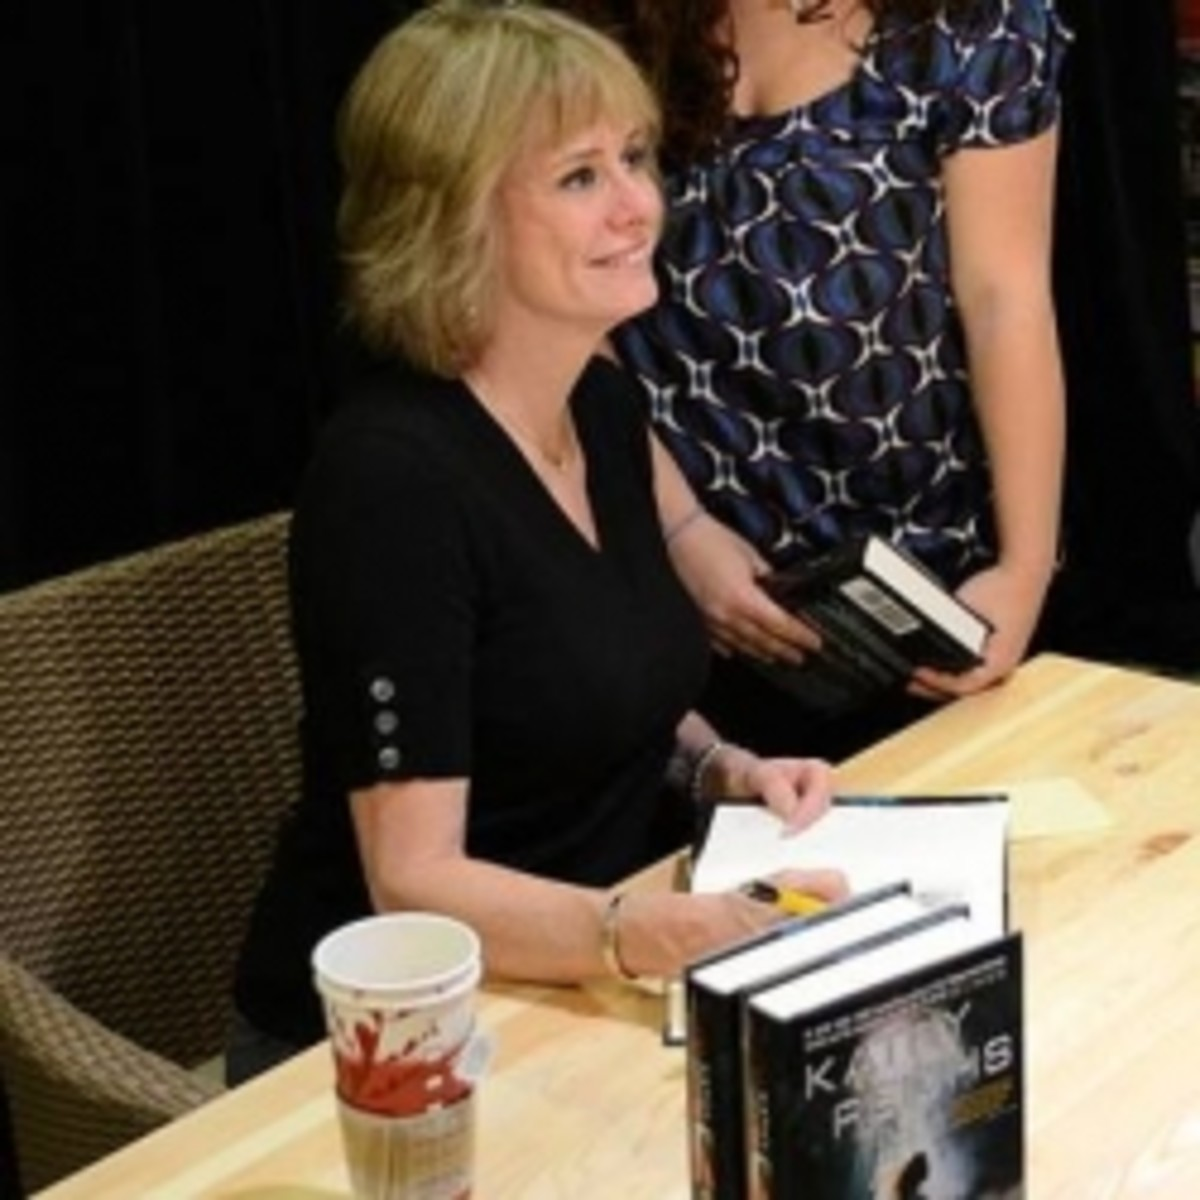 Kathy Reichs Books In Order For The Forensic Series